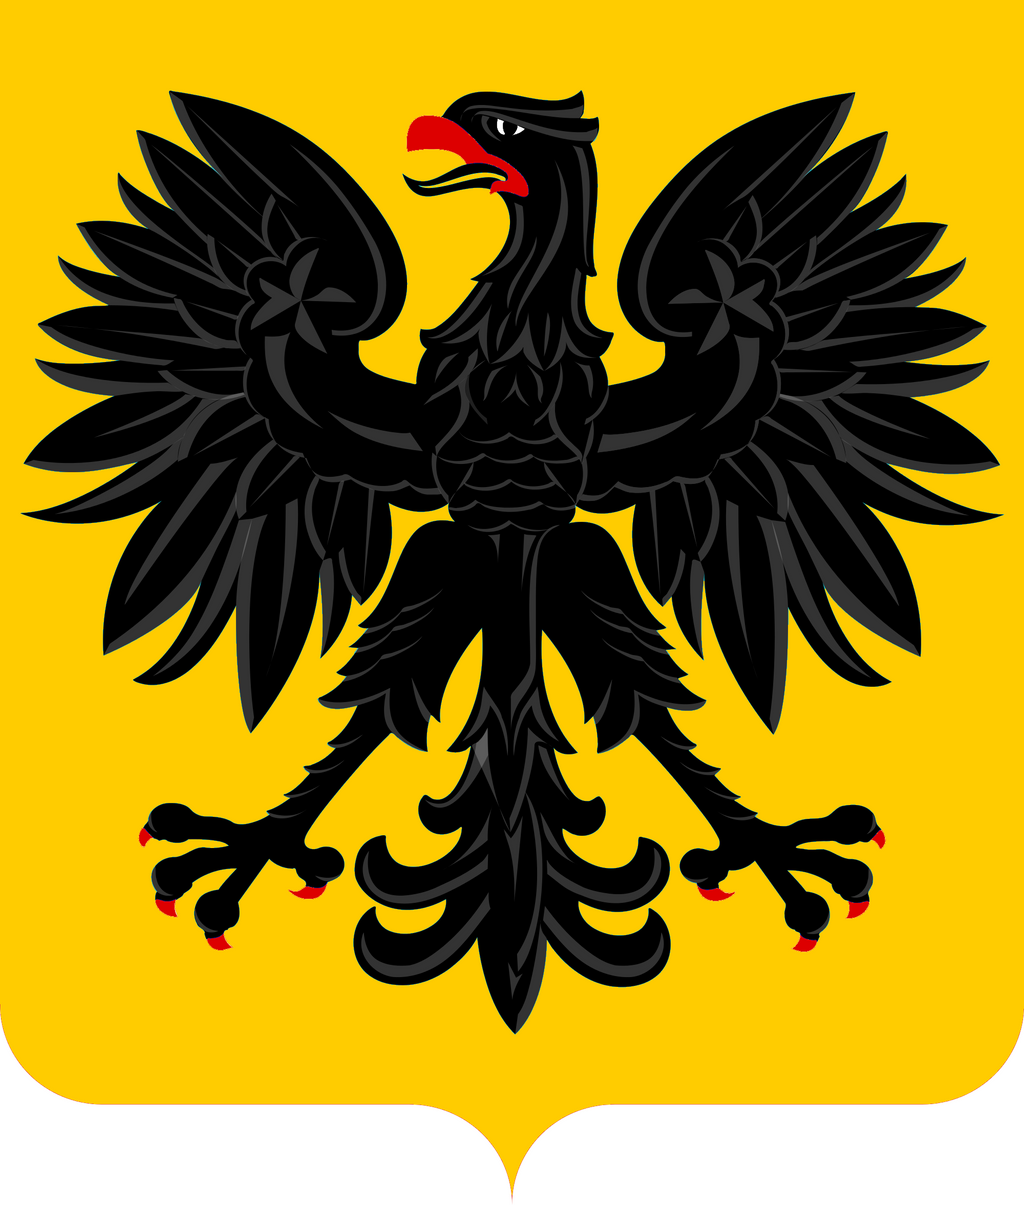 coat of arms of germany polish style by polandstronk on deviantart